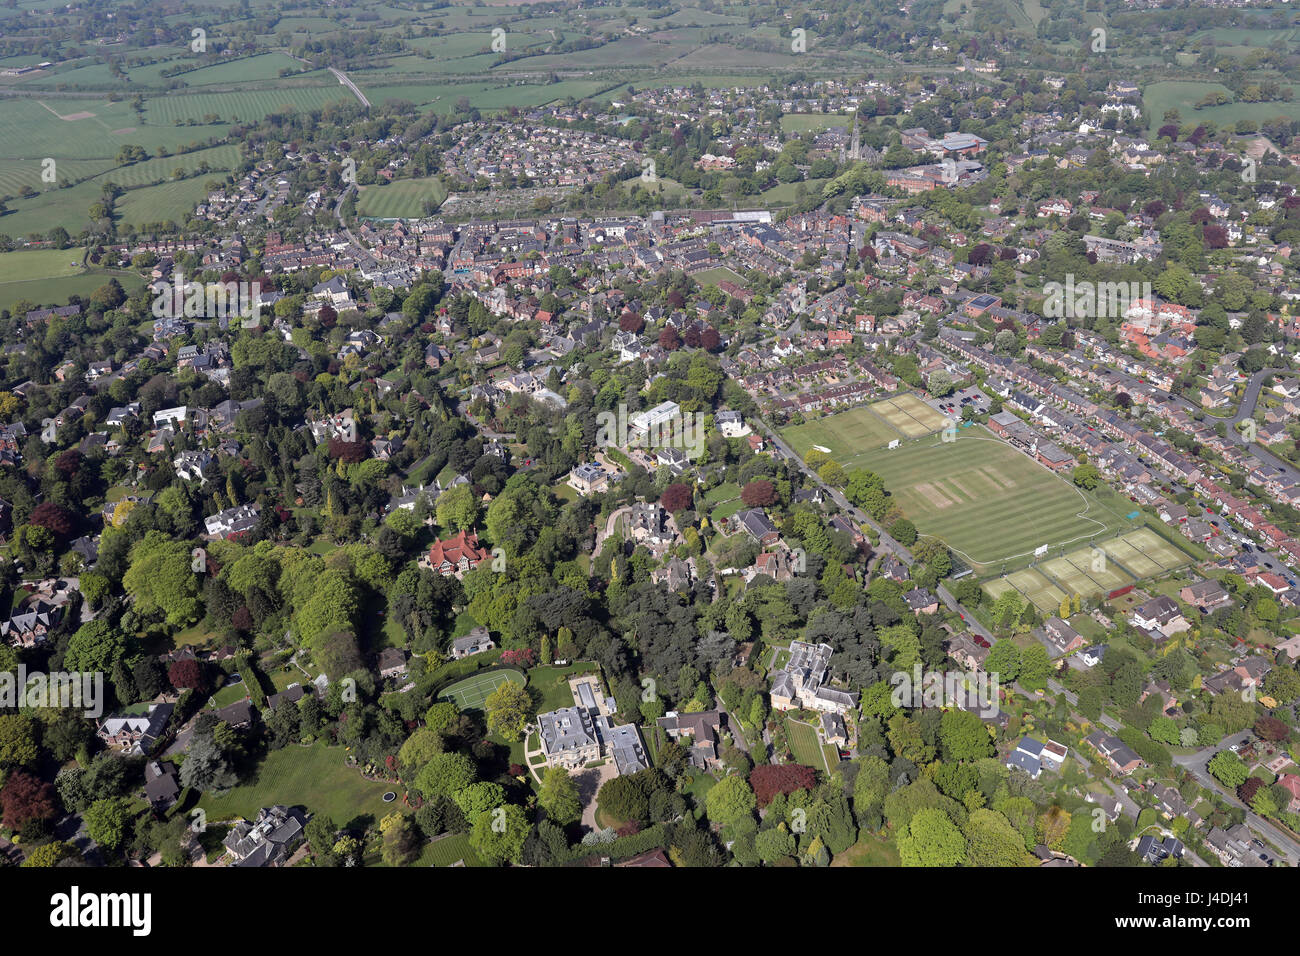 aerial view of Alderley Edge looking down Mottram Road towards the town centre, Cheshire, UK - Stock Image